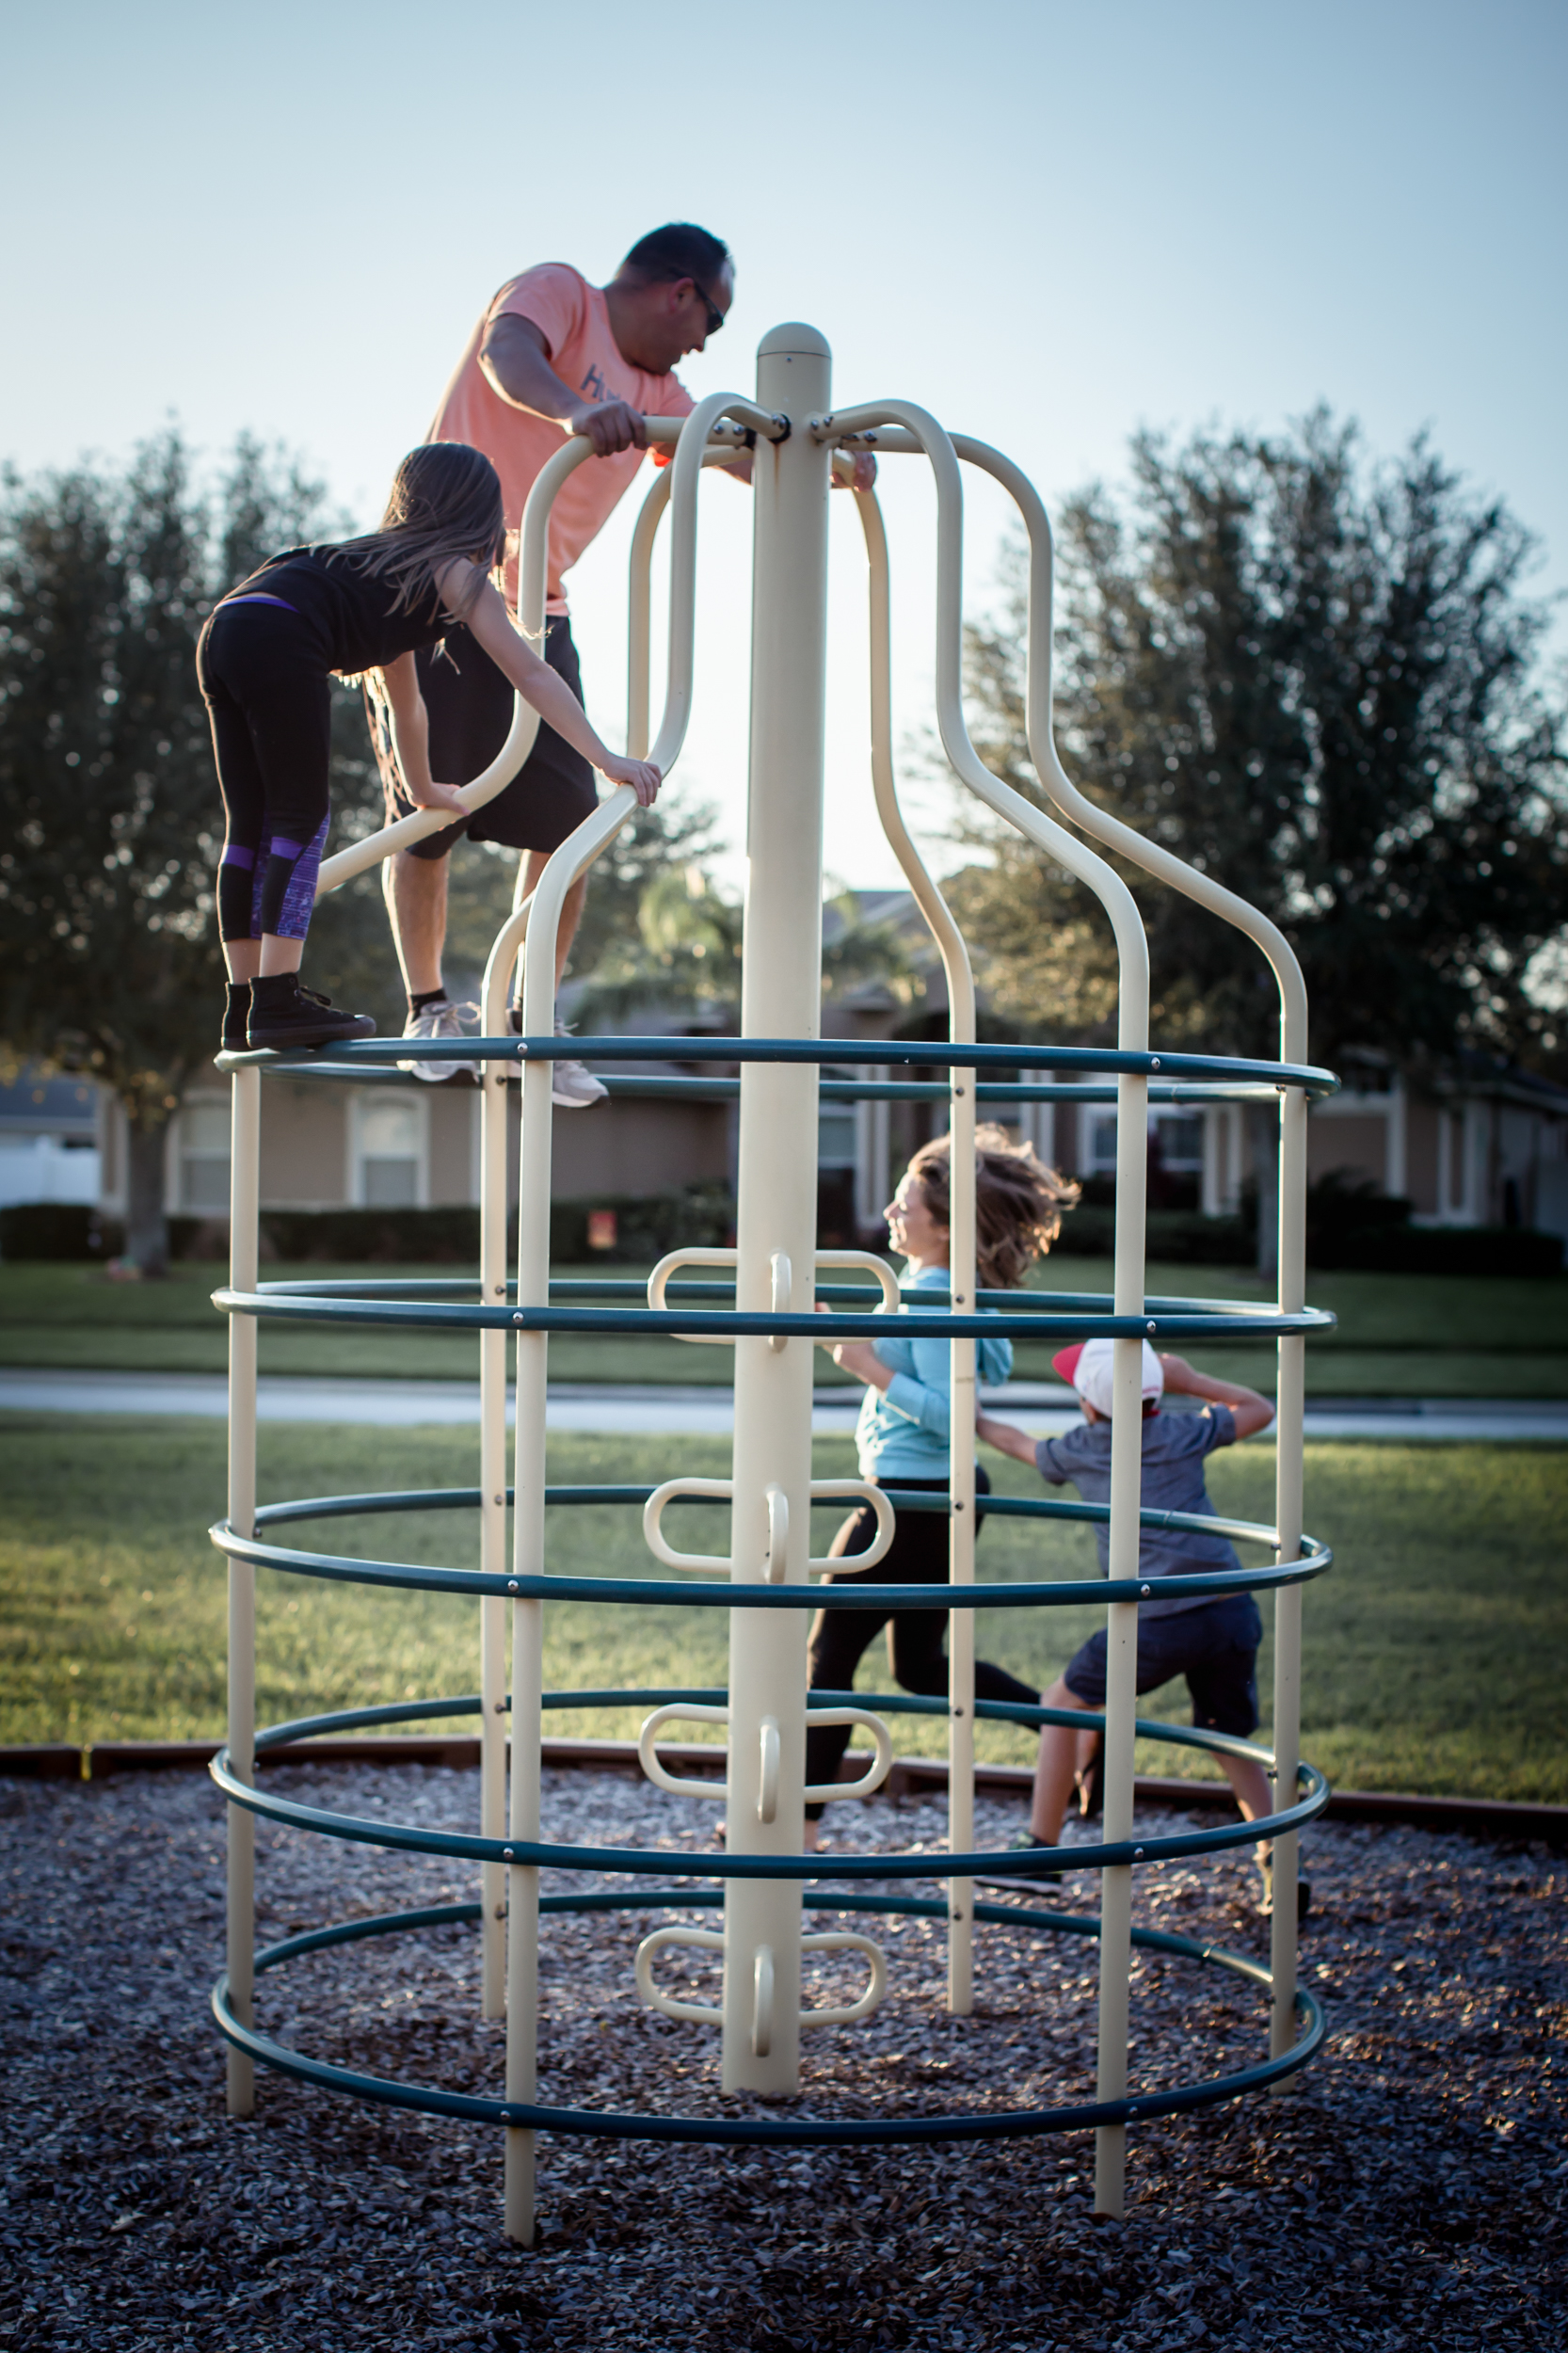 A family of four plays tag at the playground during family story session in Clermont, Florida.